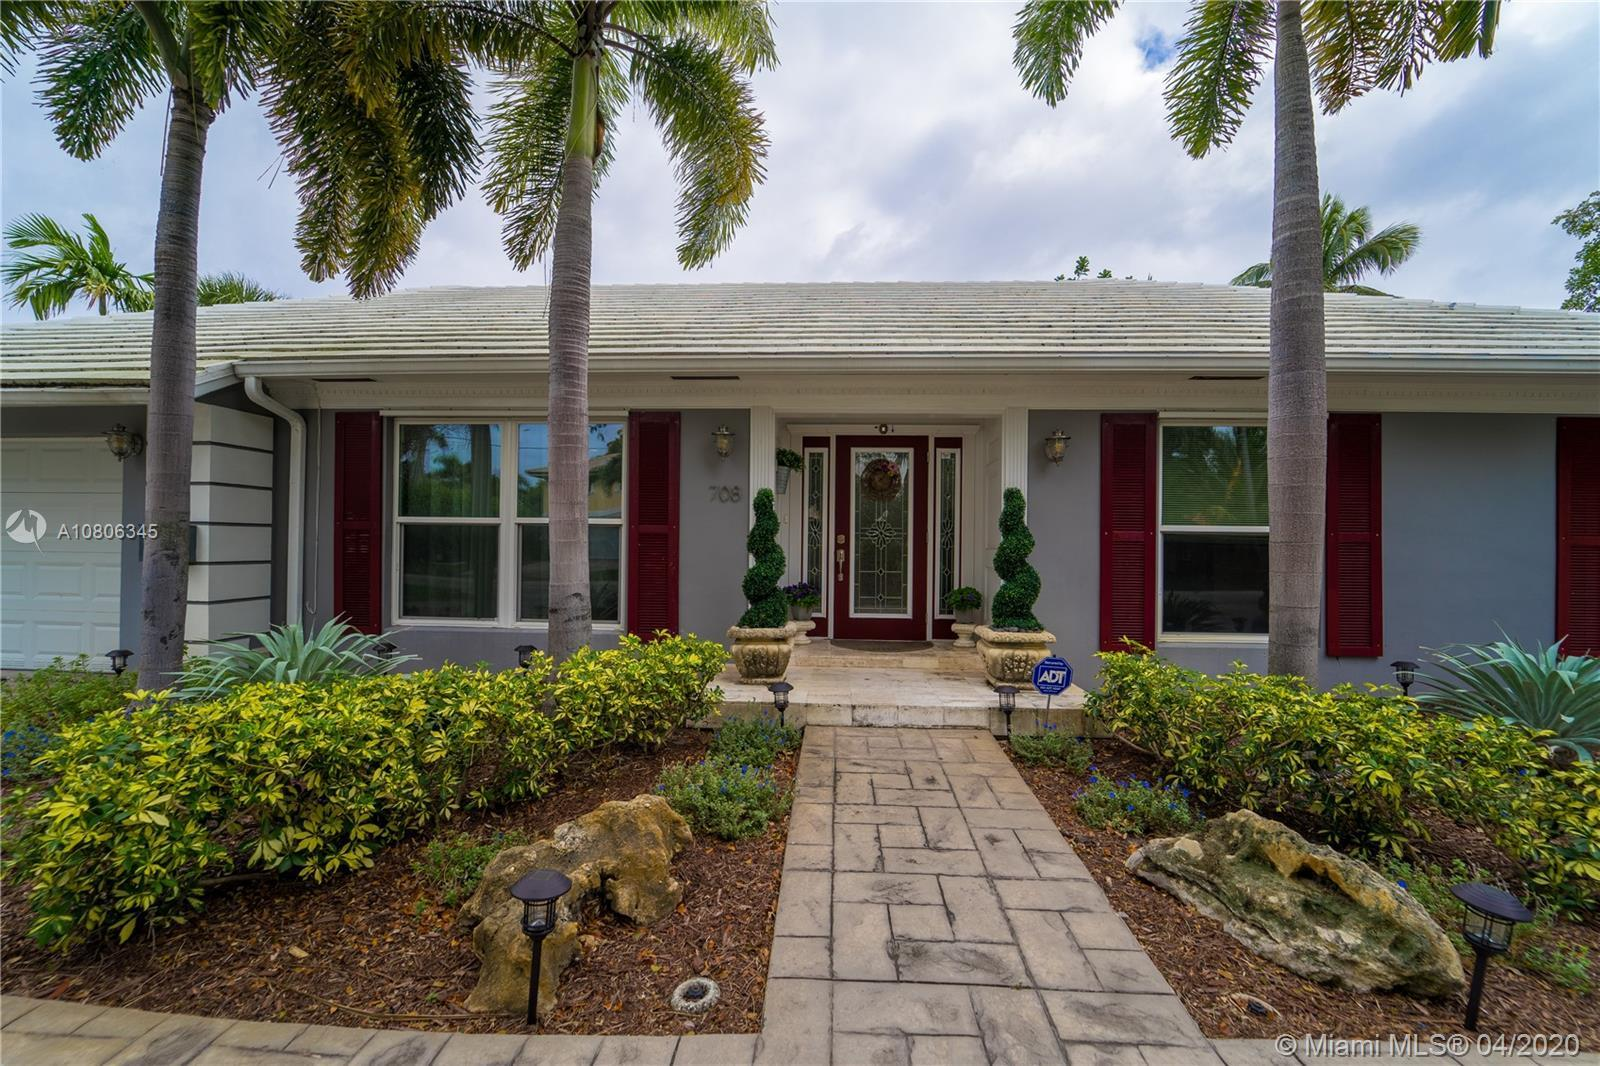 REDUCED! BACK ON THE MARKET! Ready for your family. SPECTACULAR family pool home on large corner lot